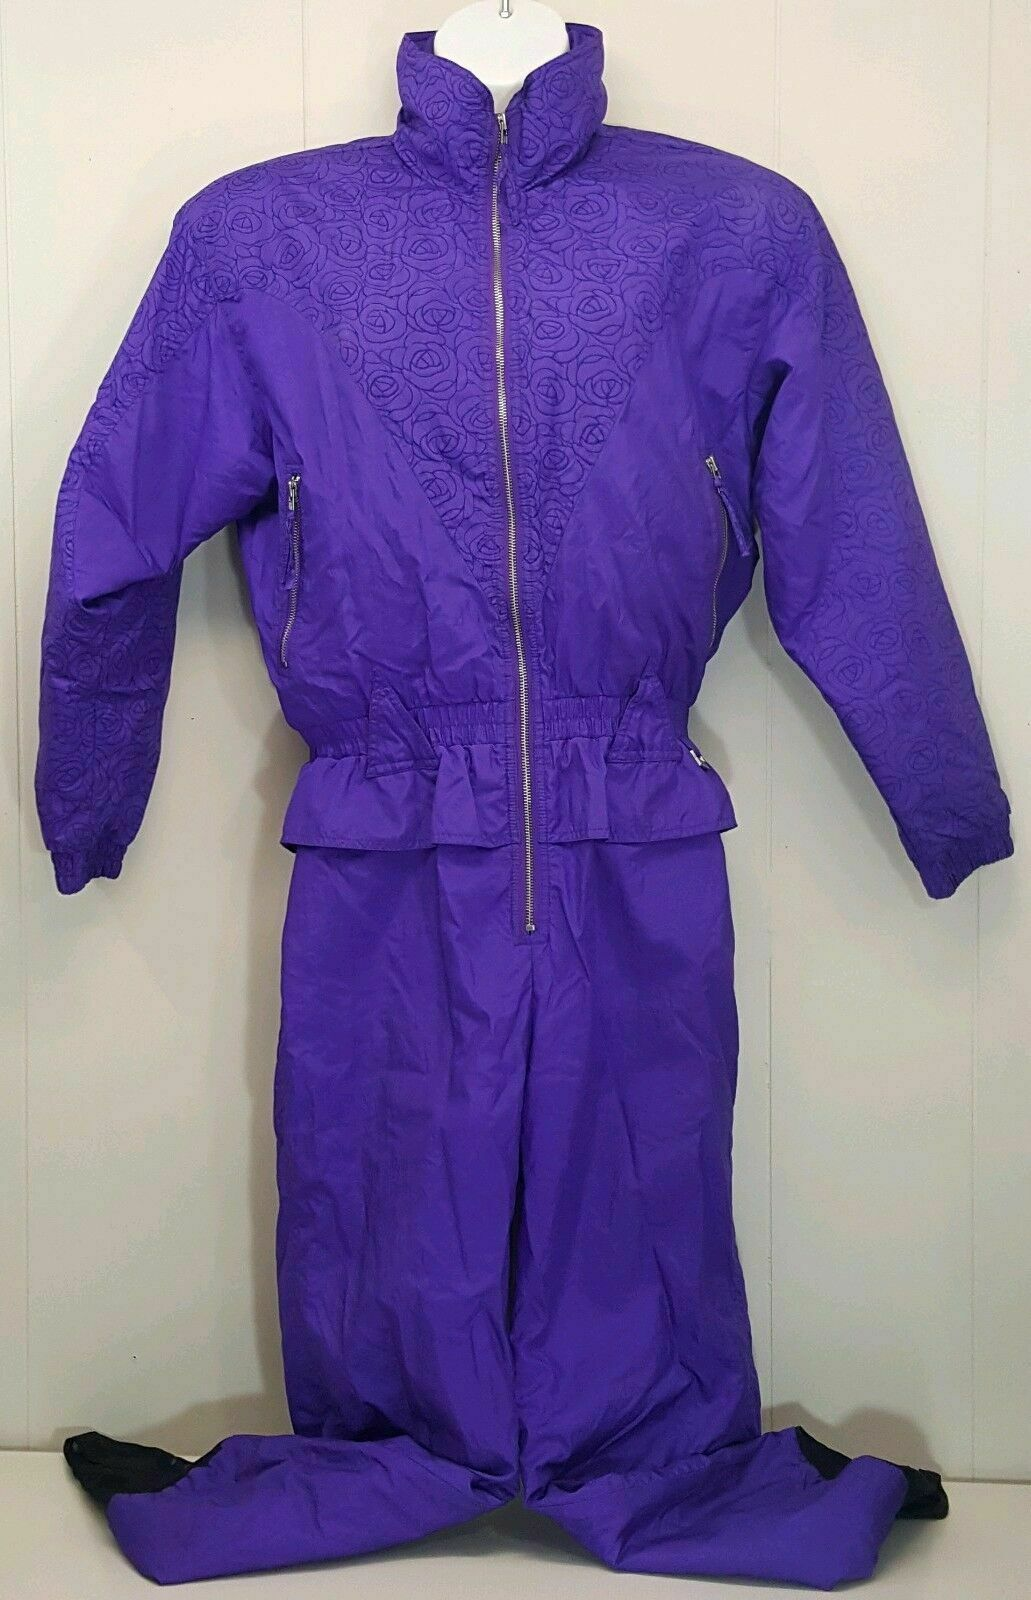 Edelweiss 12 Ski Snow Suit Purple Floral pinks Vintage 80s 90s Zip Up